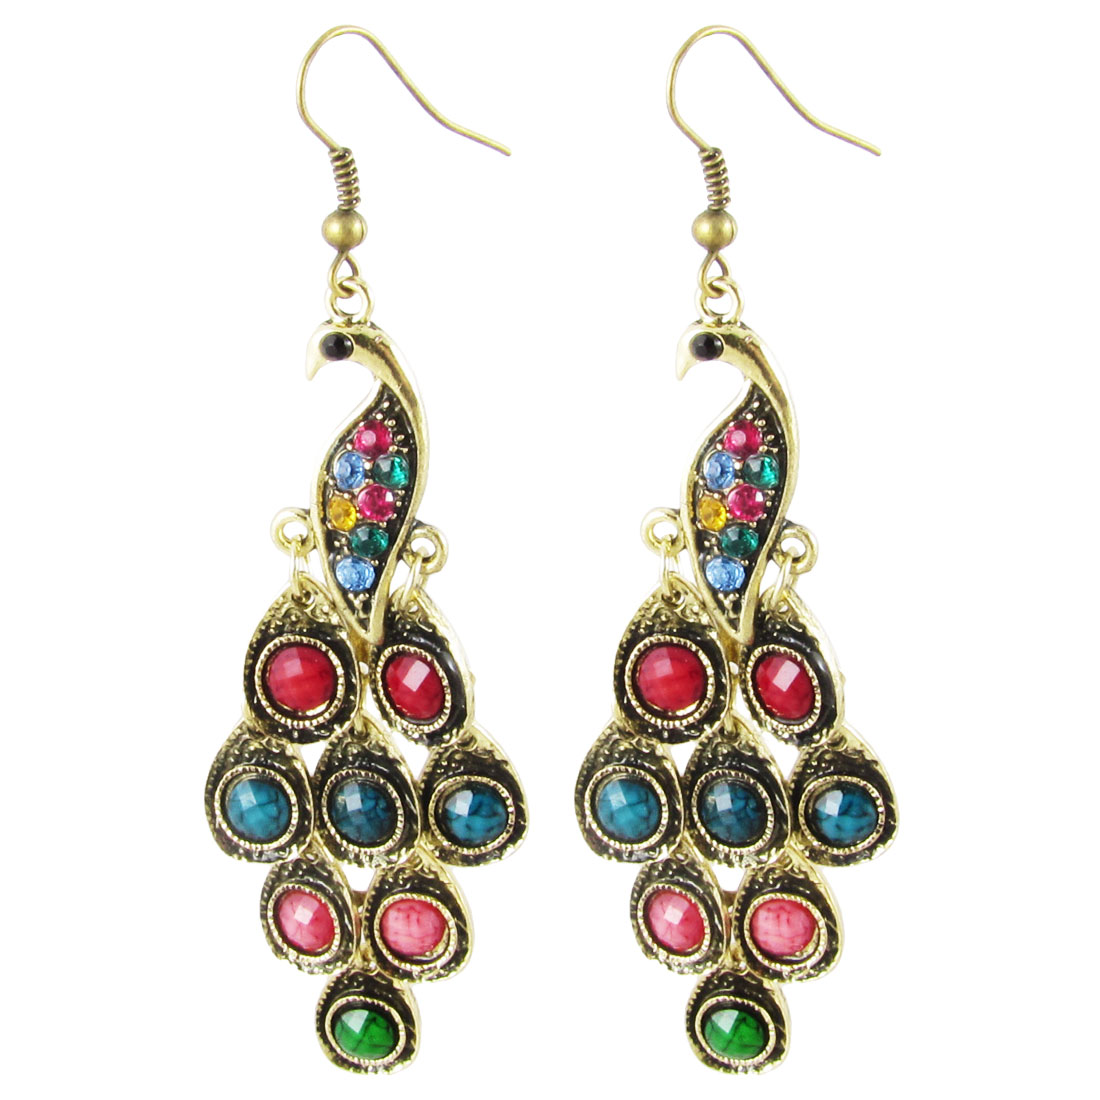 Pair Multicolor Rhinestone Bronze Tone Peacock Pendant Dangle Ear Hook Earrings